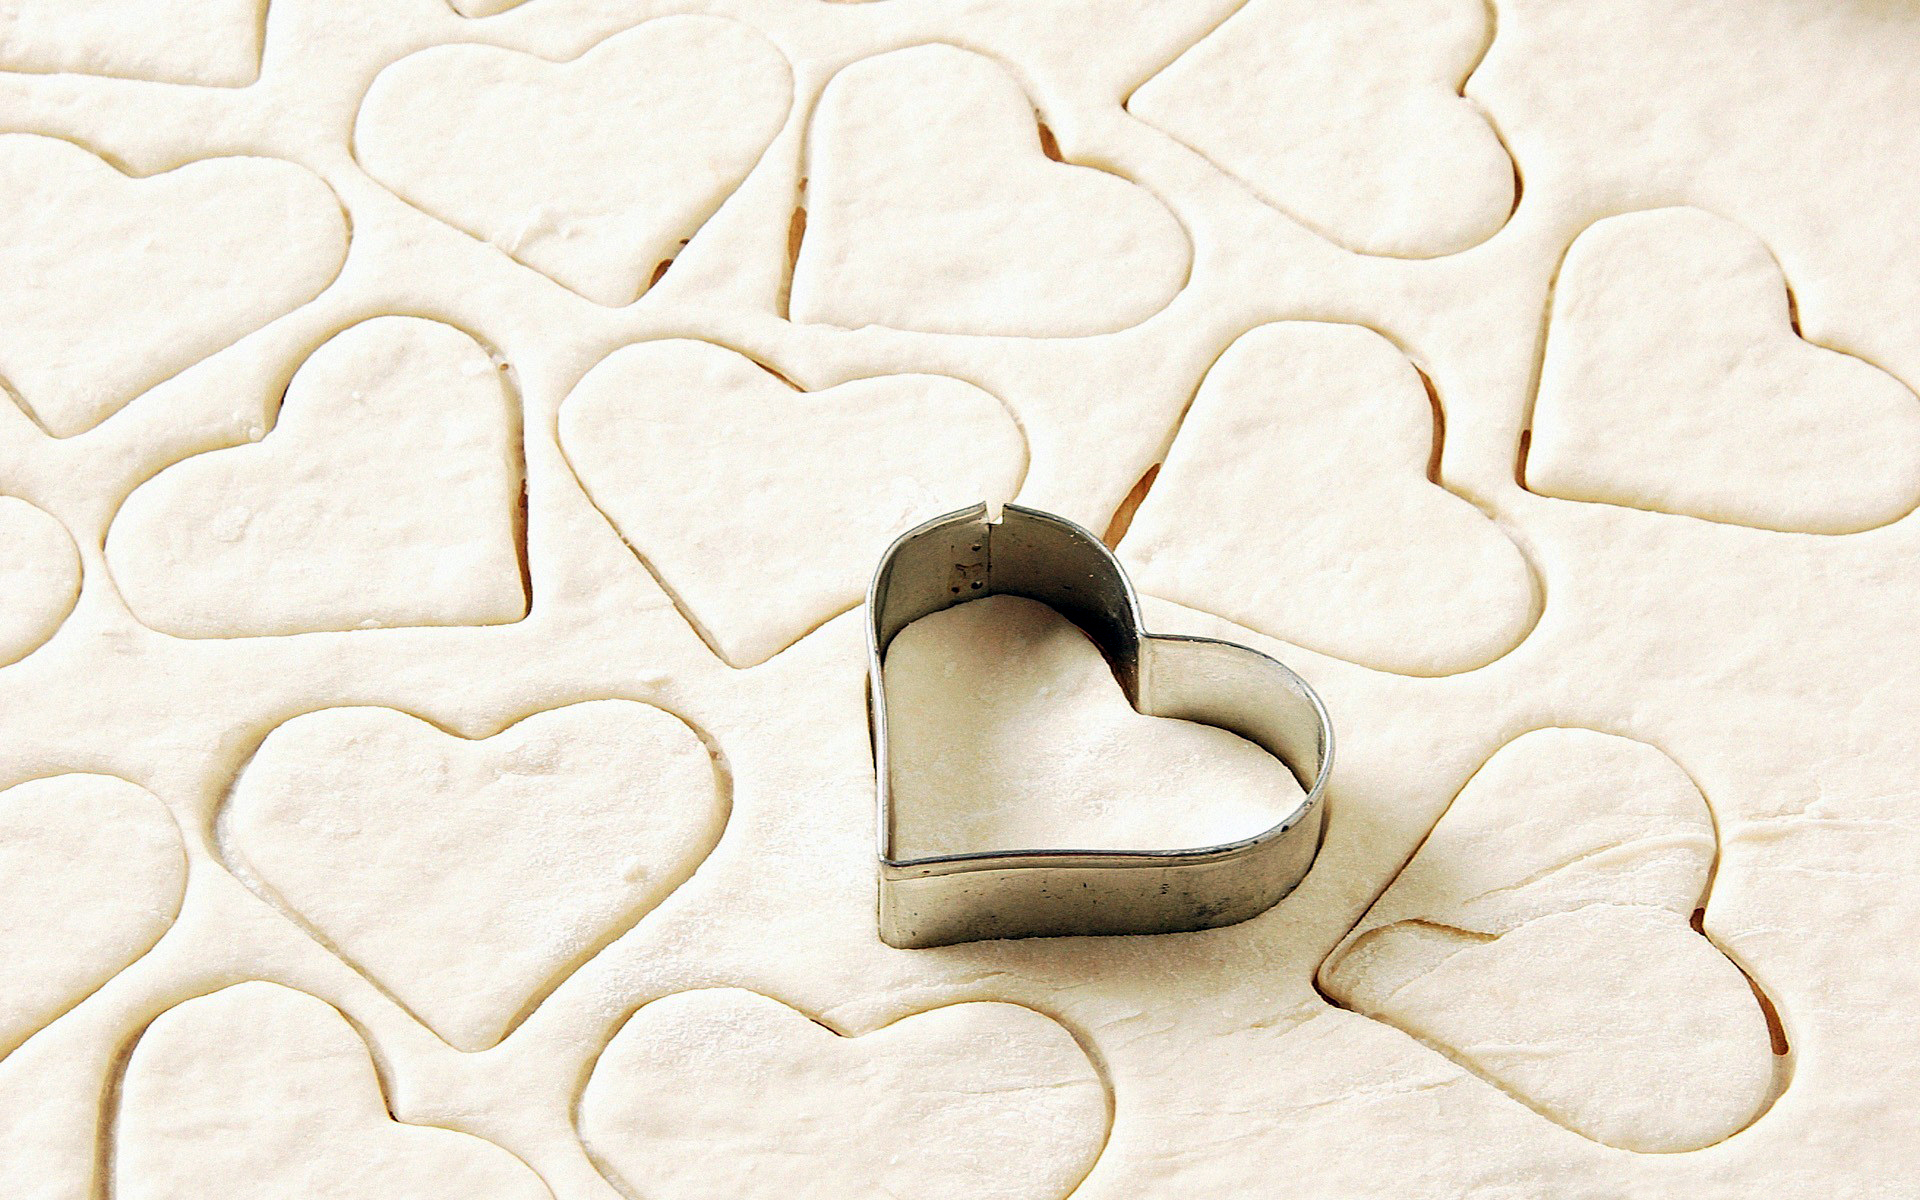 flour in love heart wallpapers - 1920x1200 - 1420749